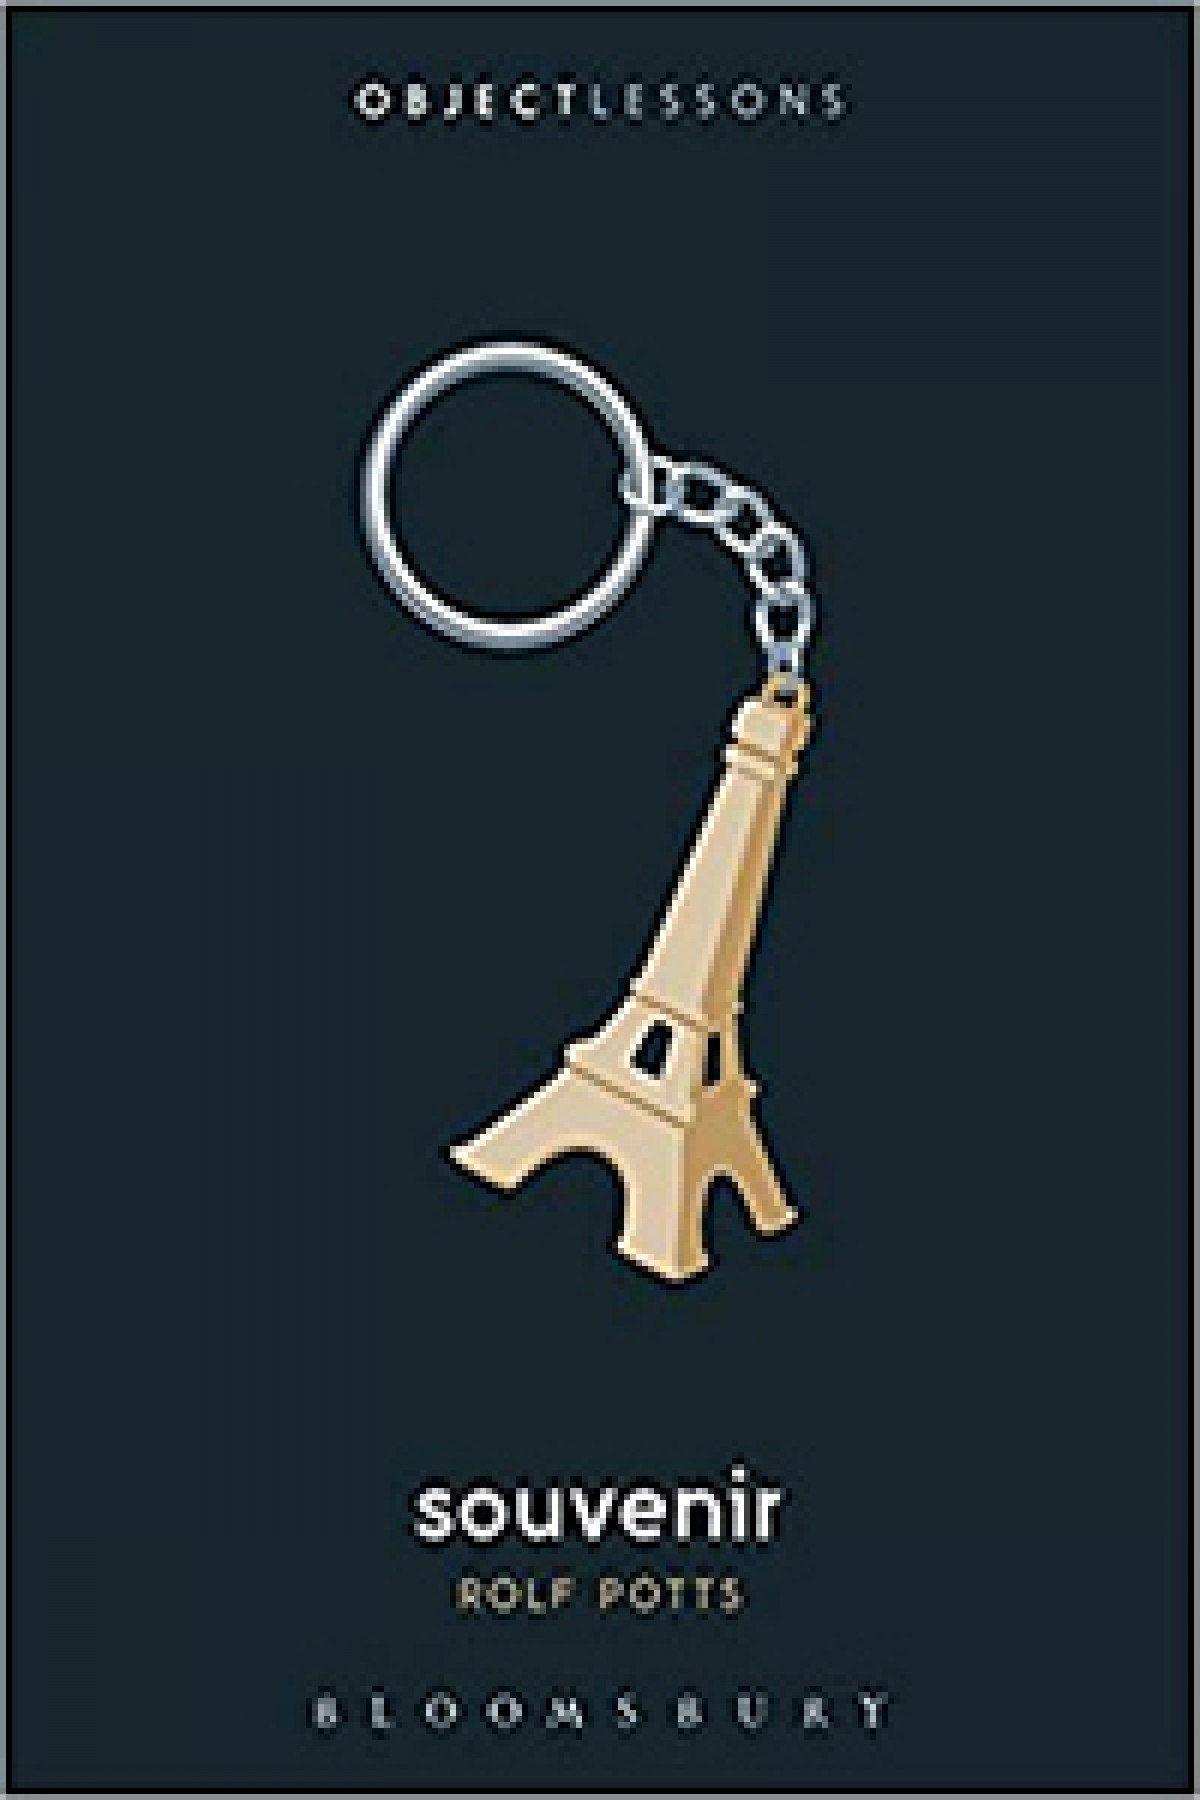 Eifle Tower keychain on book cover